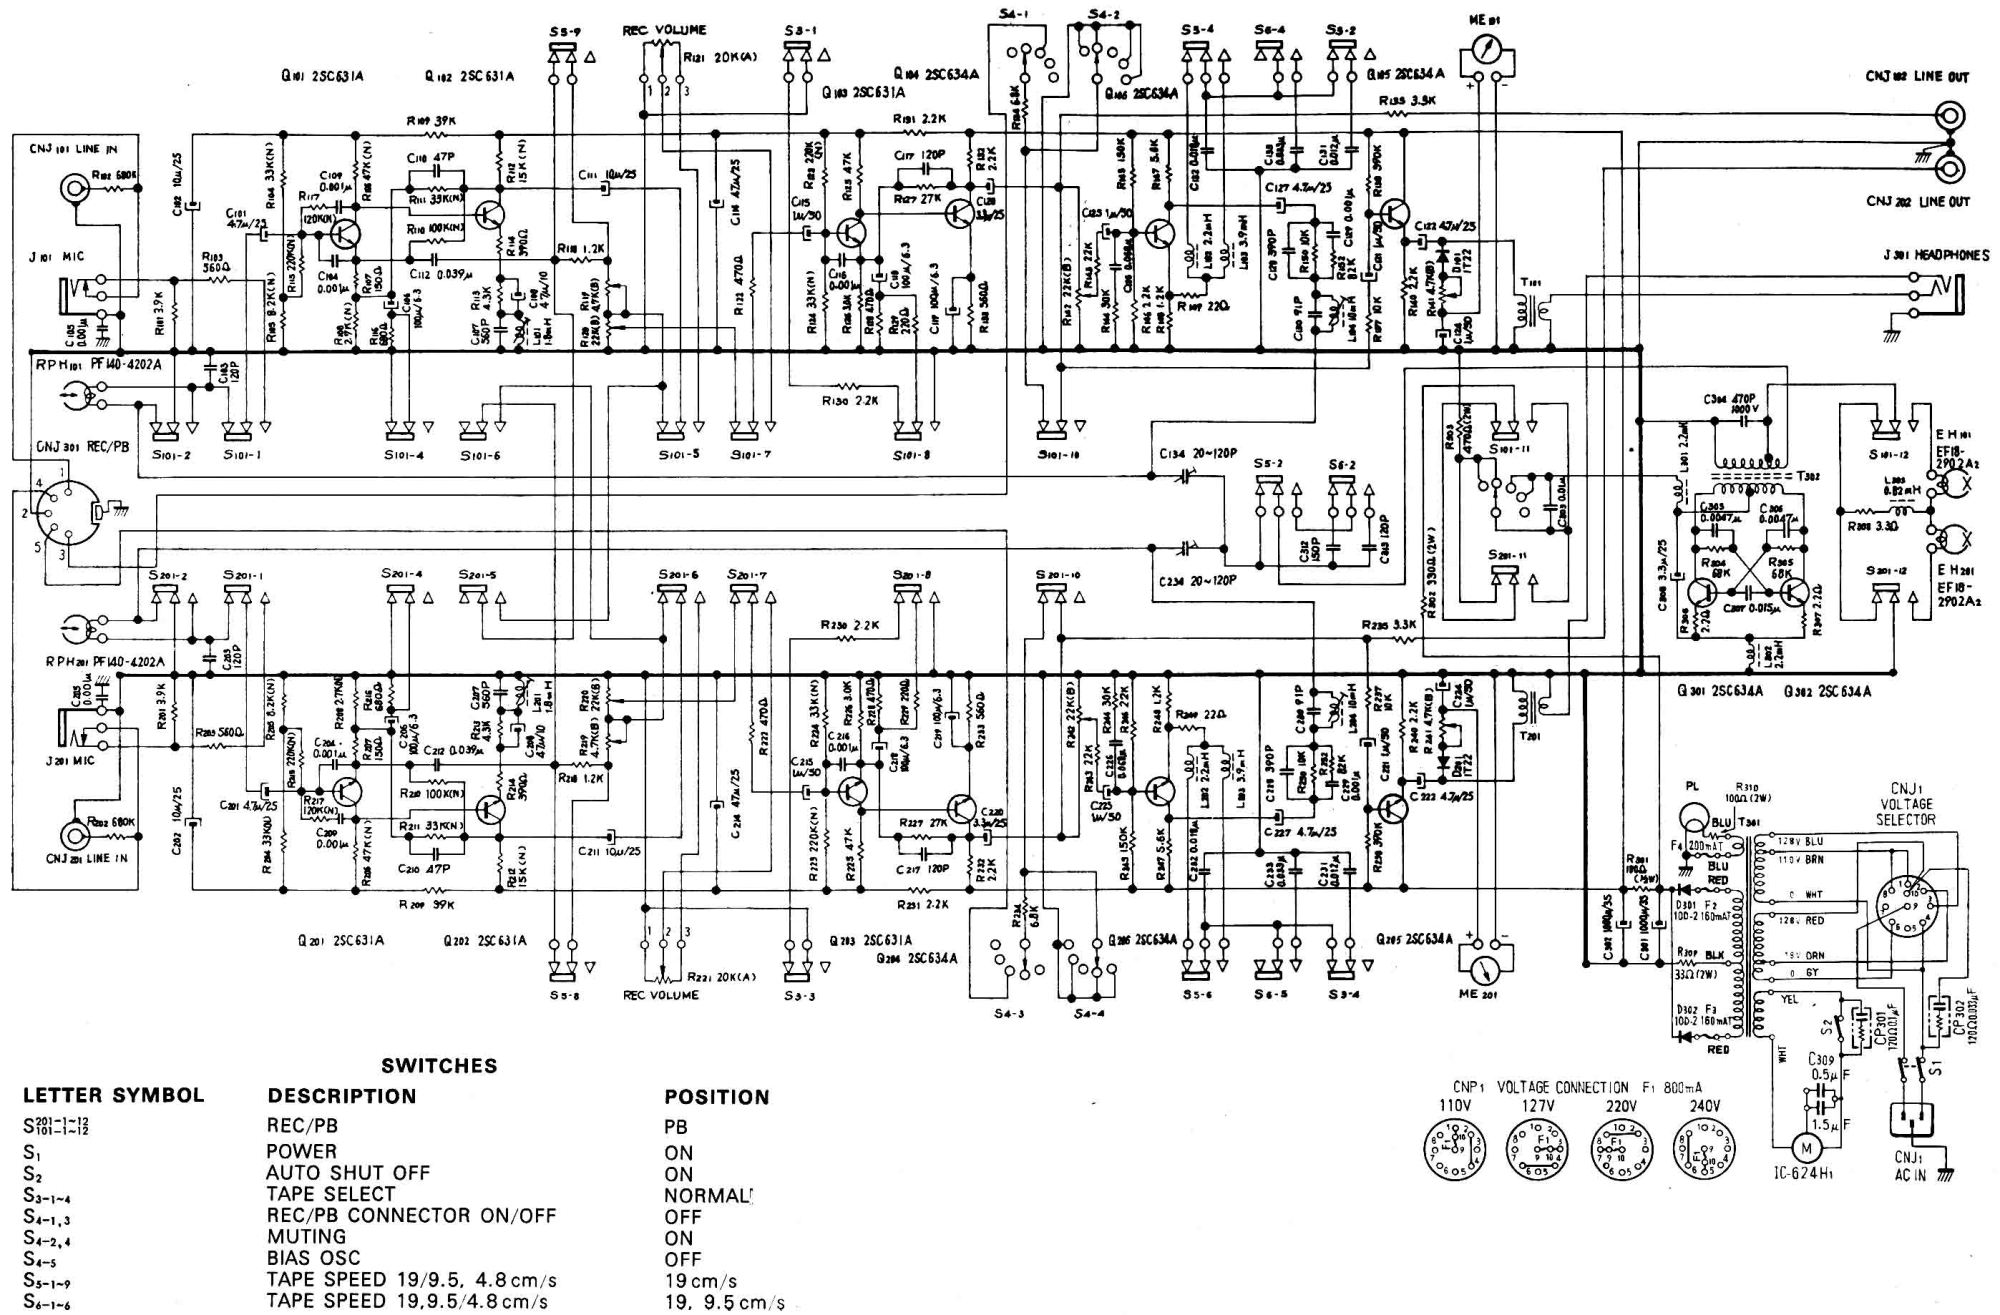 hight resolution of sony tc 280 tape recorder circuit diagram ezwt100 sony circuit diagram sony circuit diagram